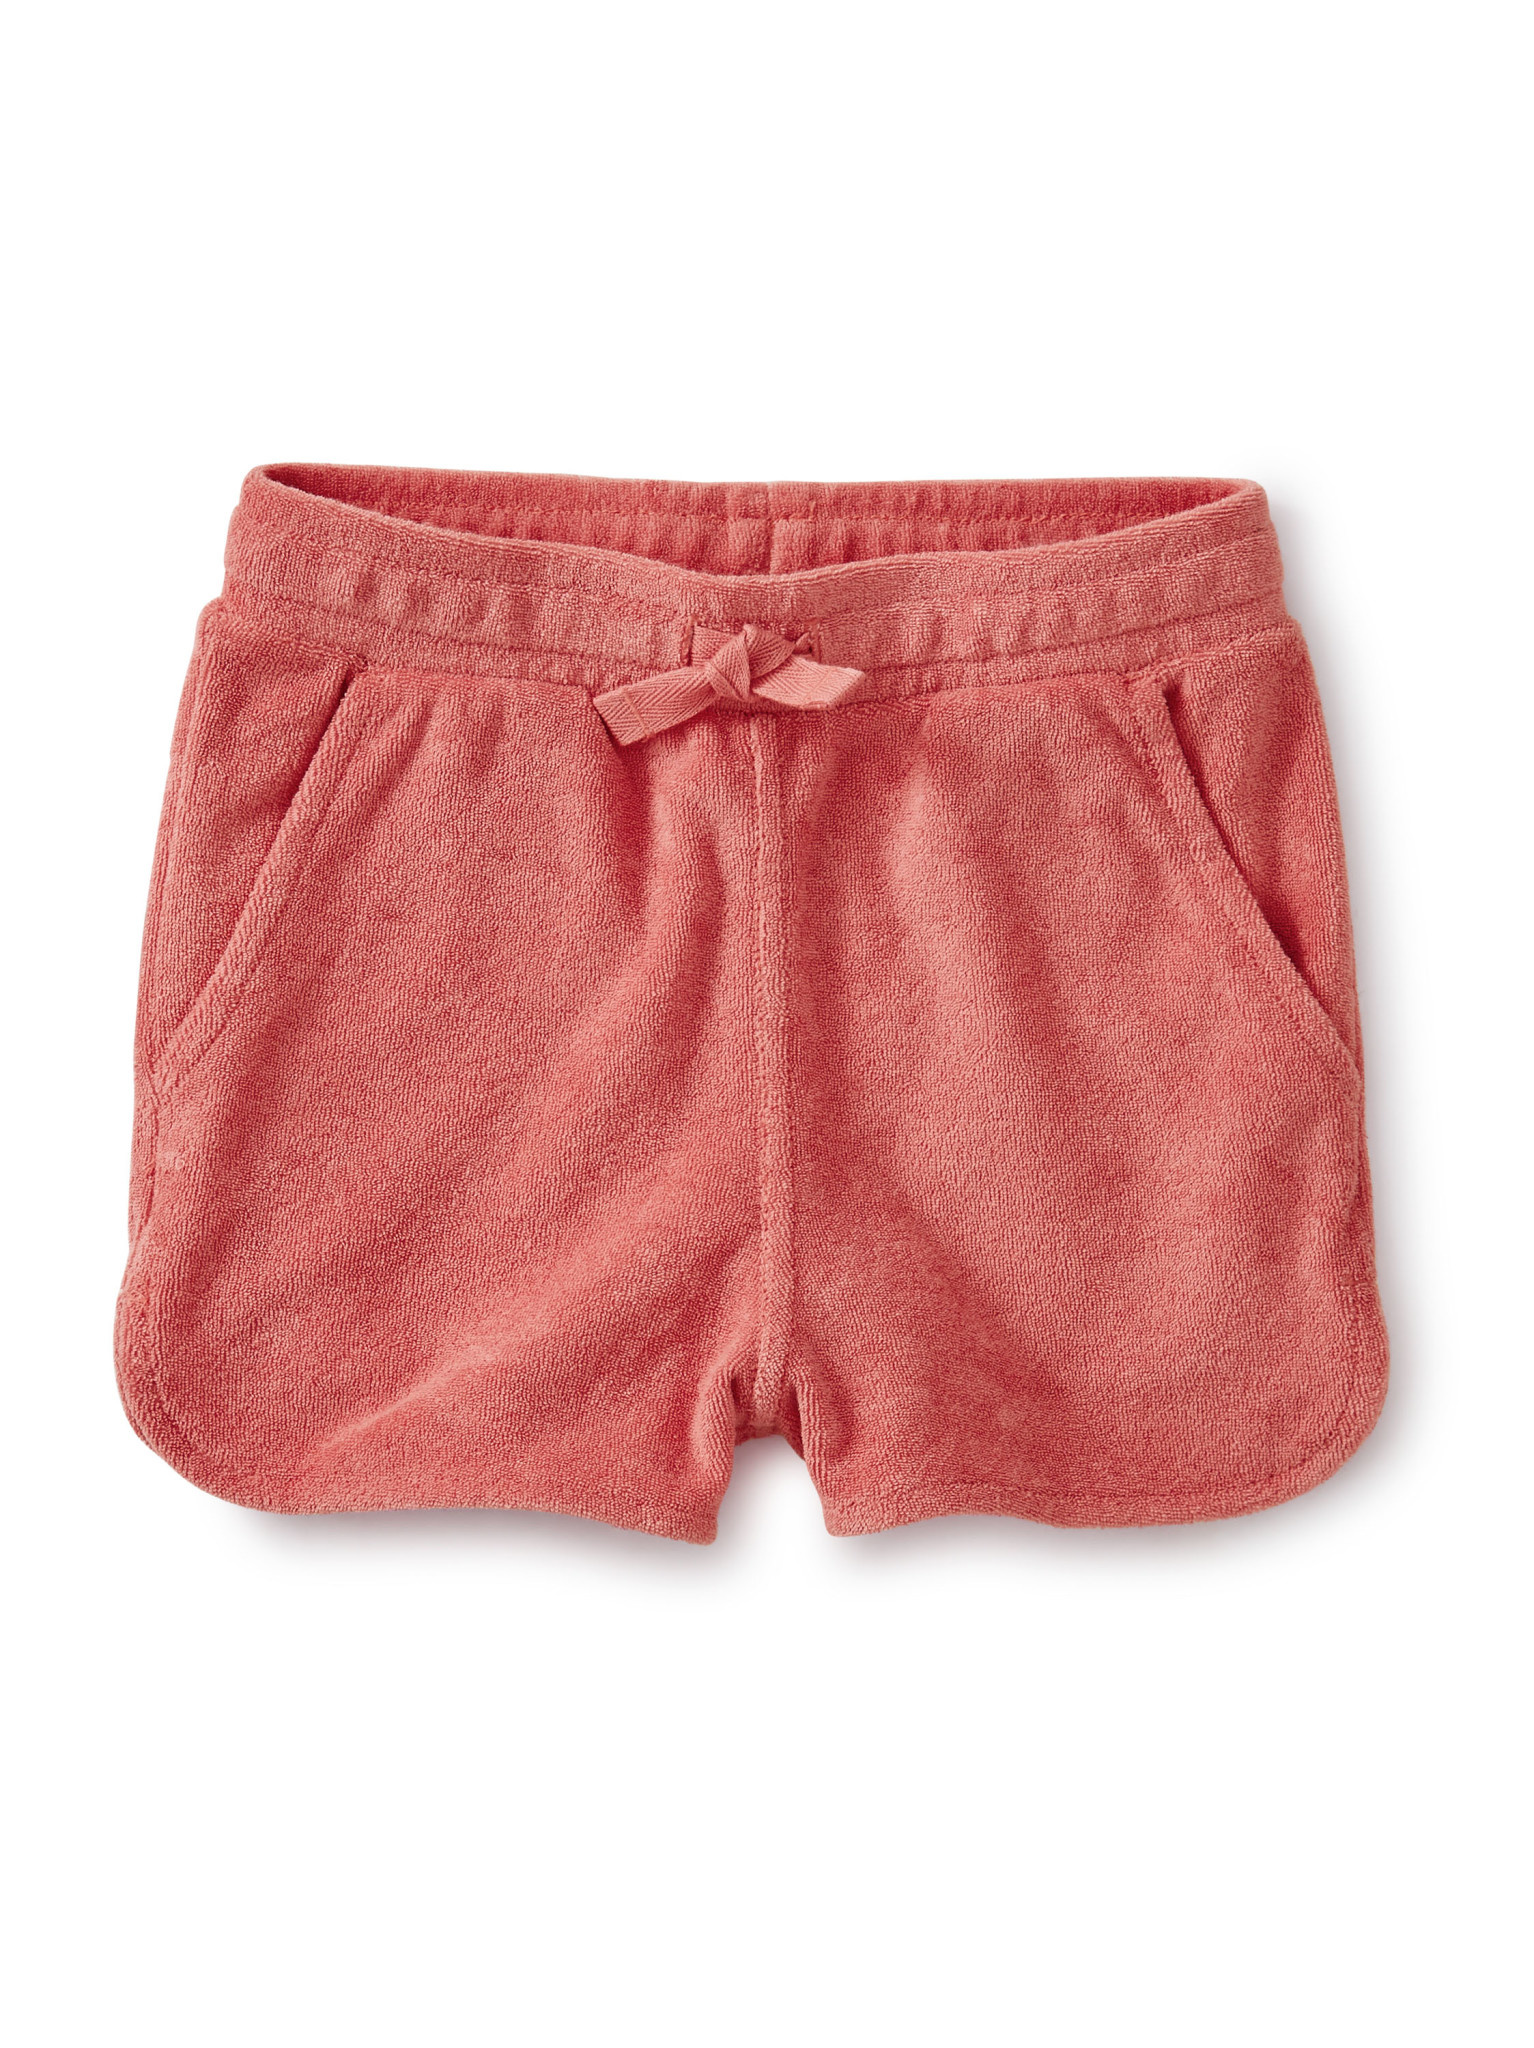 Tea Collection Terry Cloth Shorts